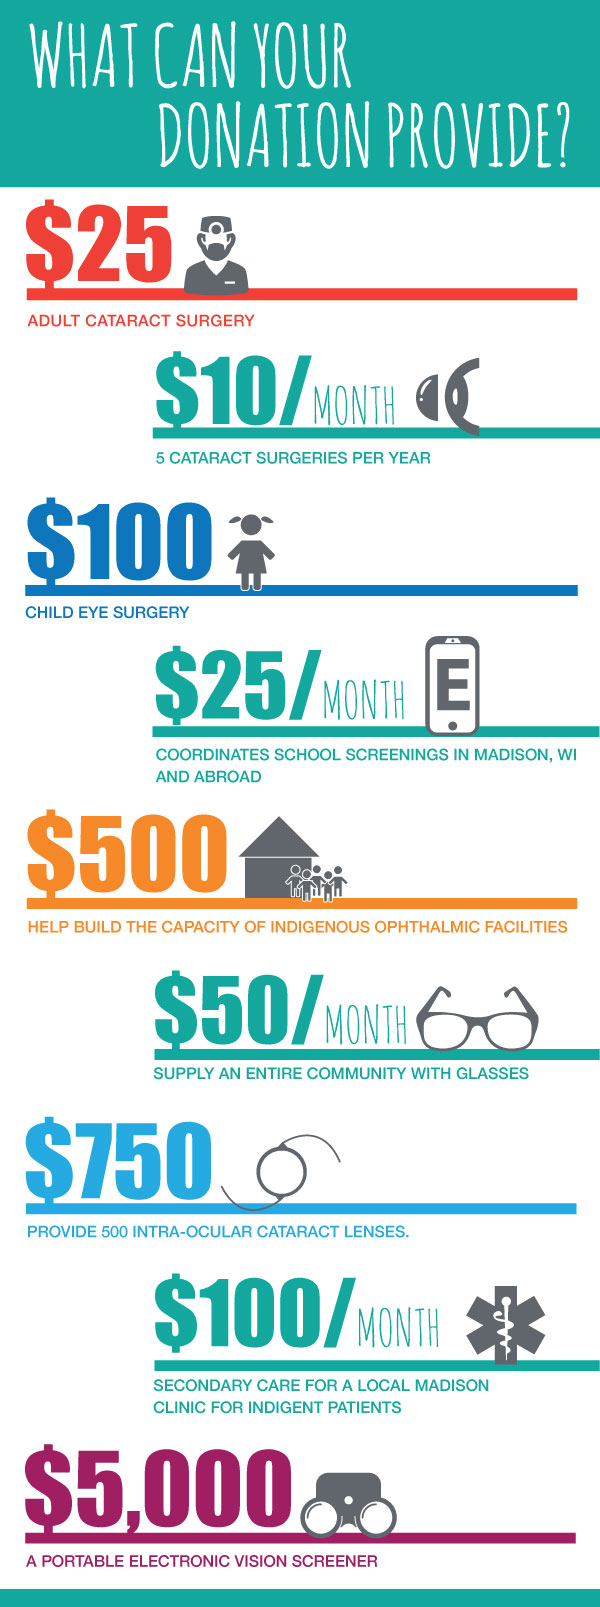 What Can Your Donation Provide? infographic